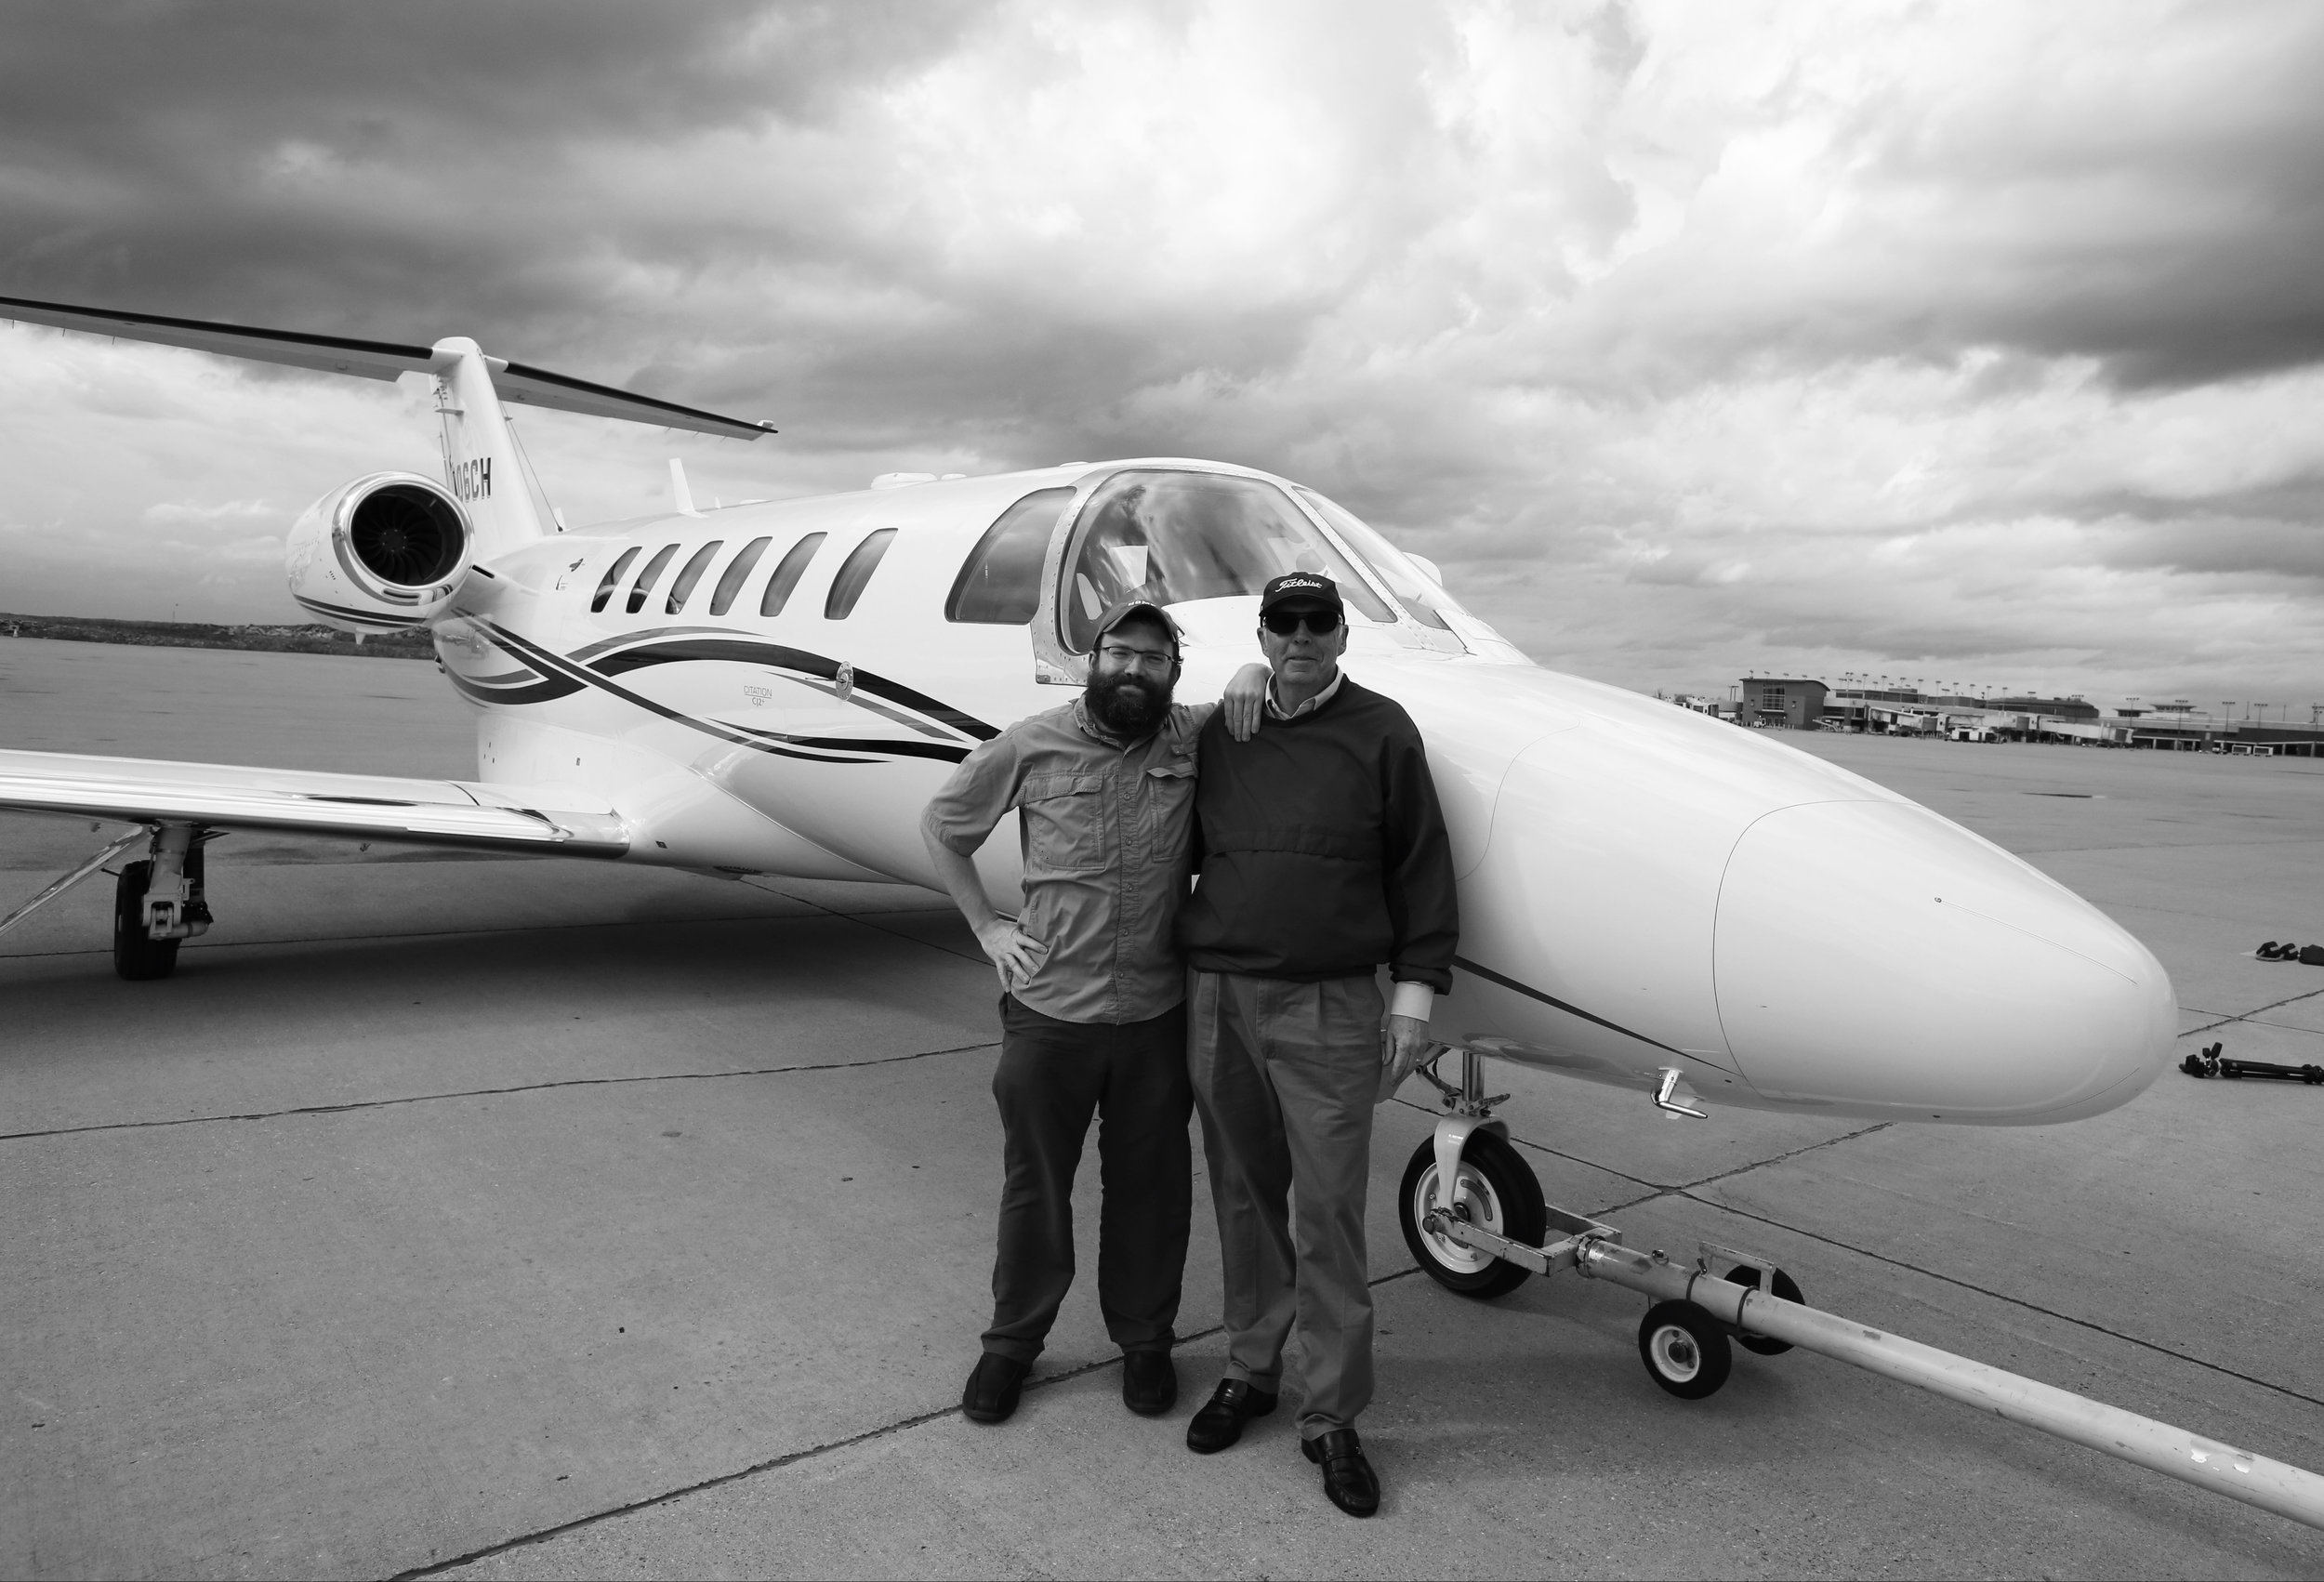 My father and I after his final flight. When he would leave for flights during my childhood, I would hold on to his pant leg until he gave me a dollar. I would give a lot more than that to fly with him again.